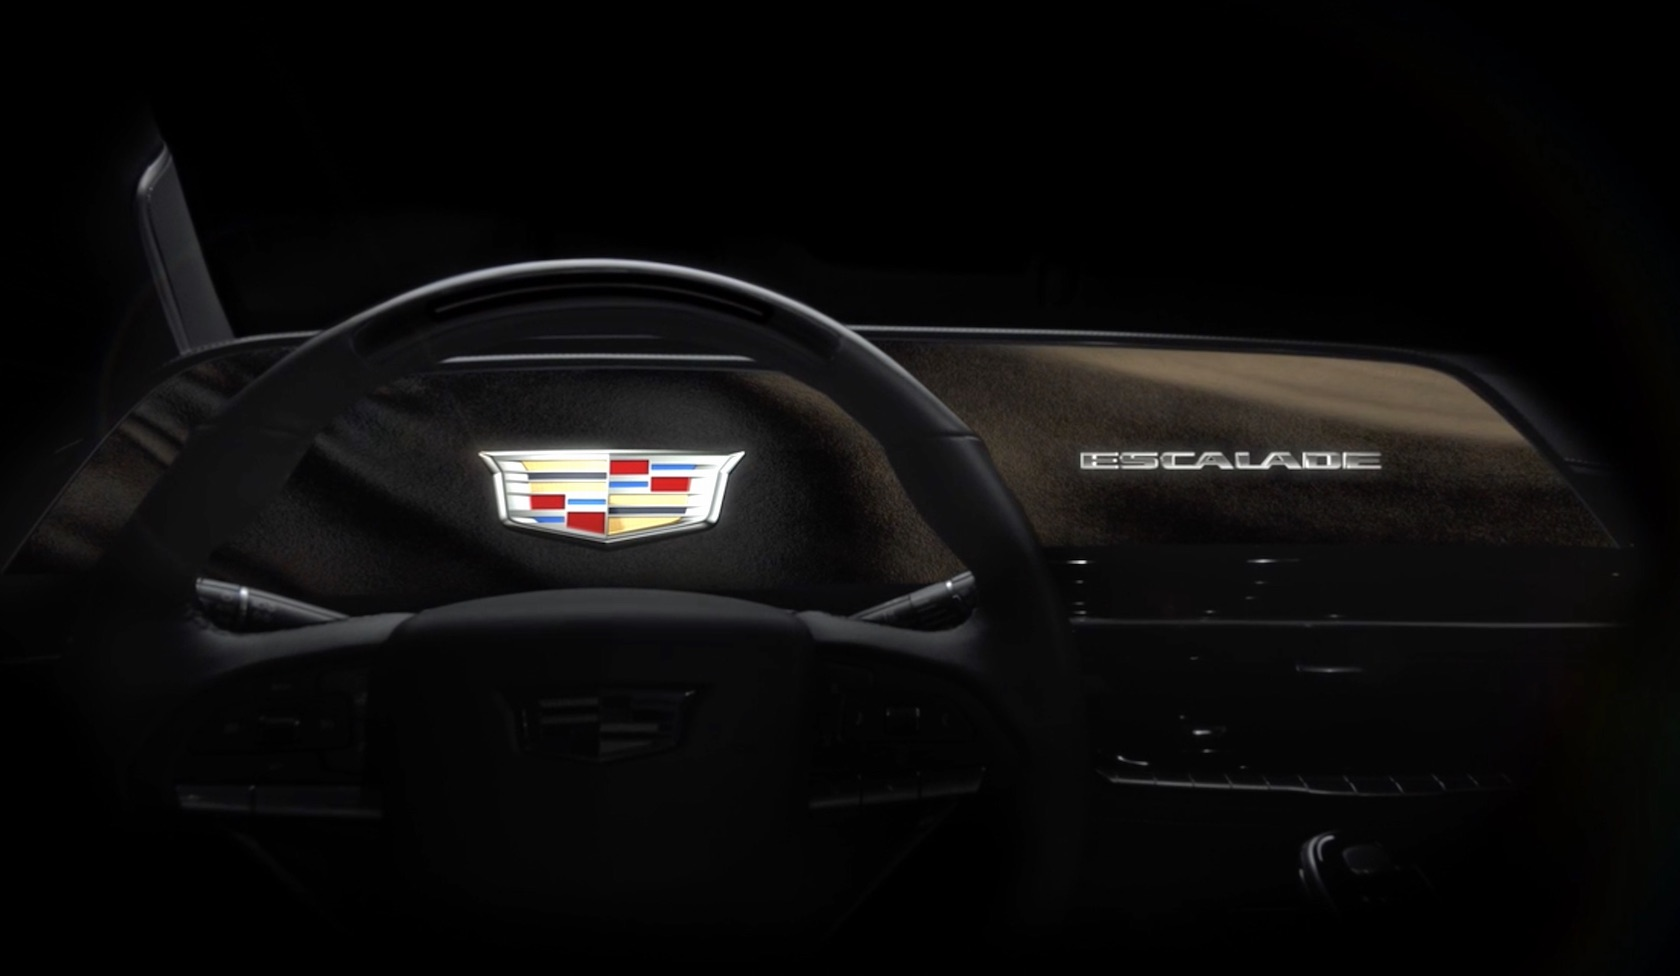 Cars Com Reviews >> The 2021 Cadillac Escalade's high-tech dash says excess is back in style - SlashGear